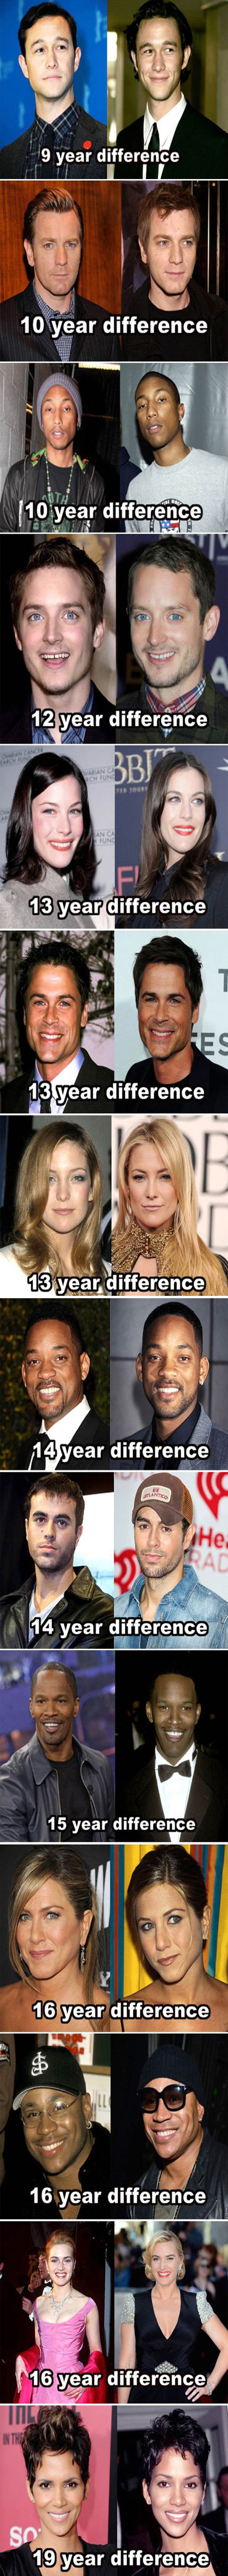 celebrity ages